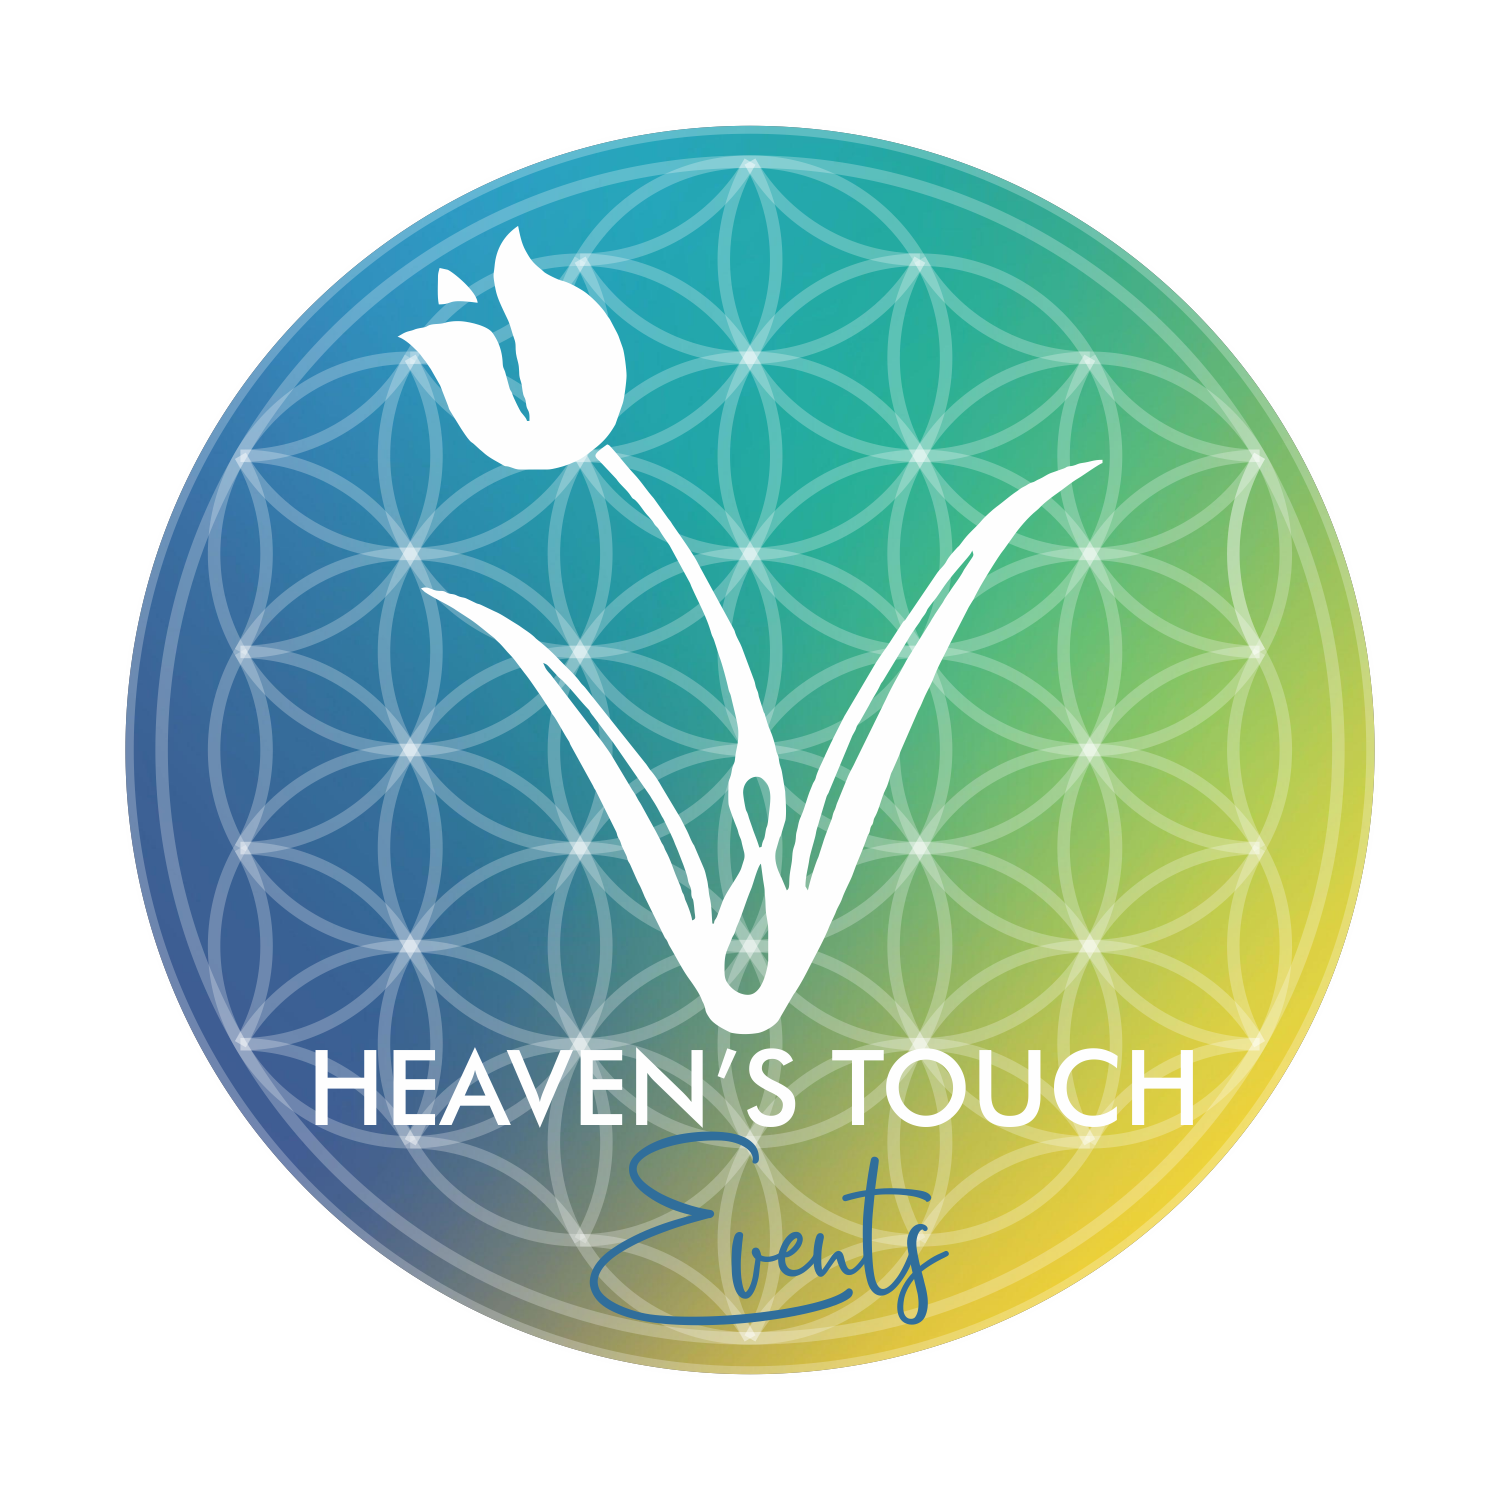 Heaven's Touch Event Planners